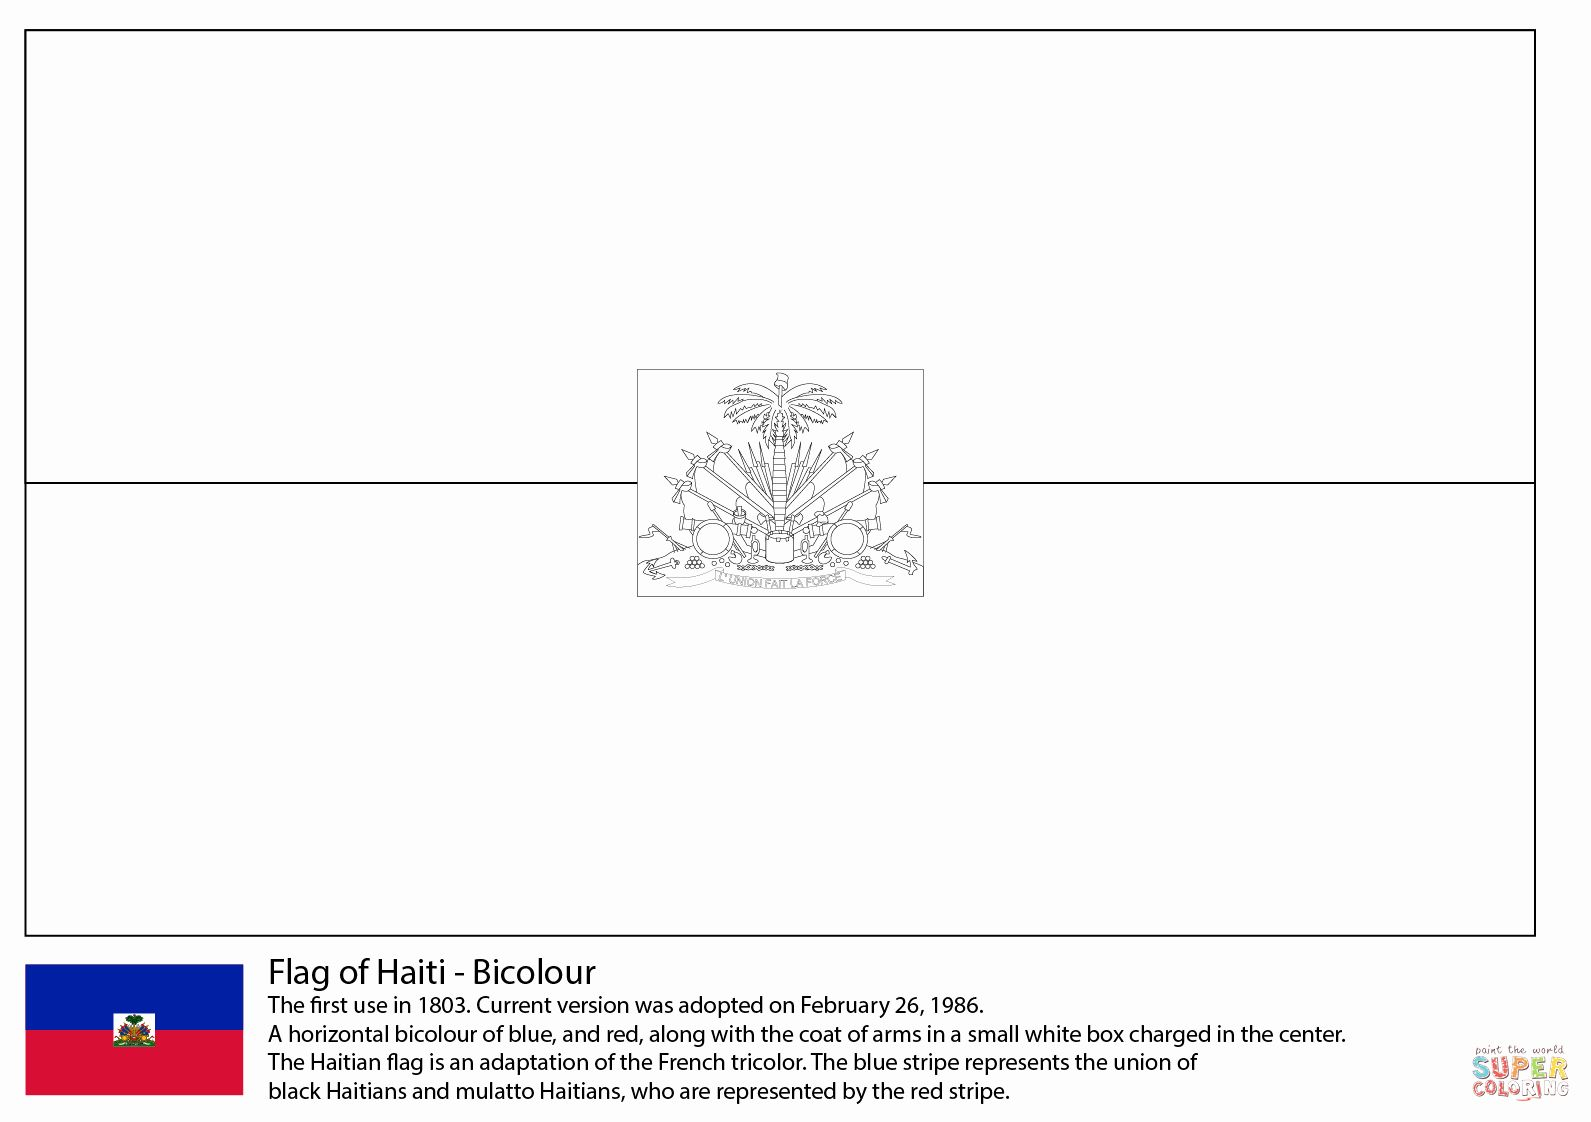 France Flag Coloring Sheet Awesome Honduras Flag Coloring Page